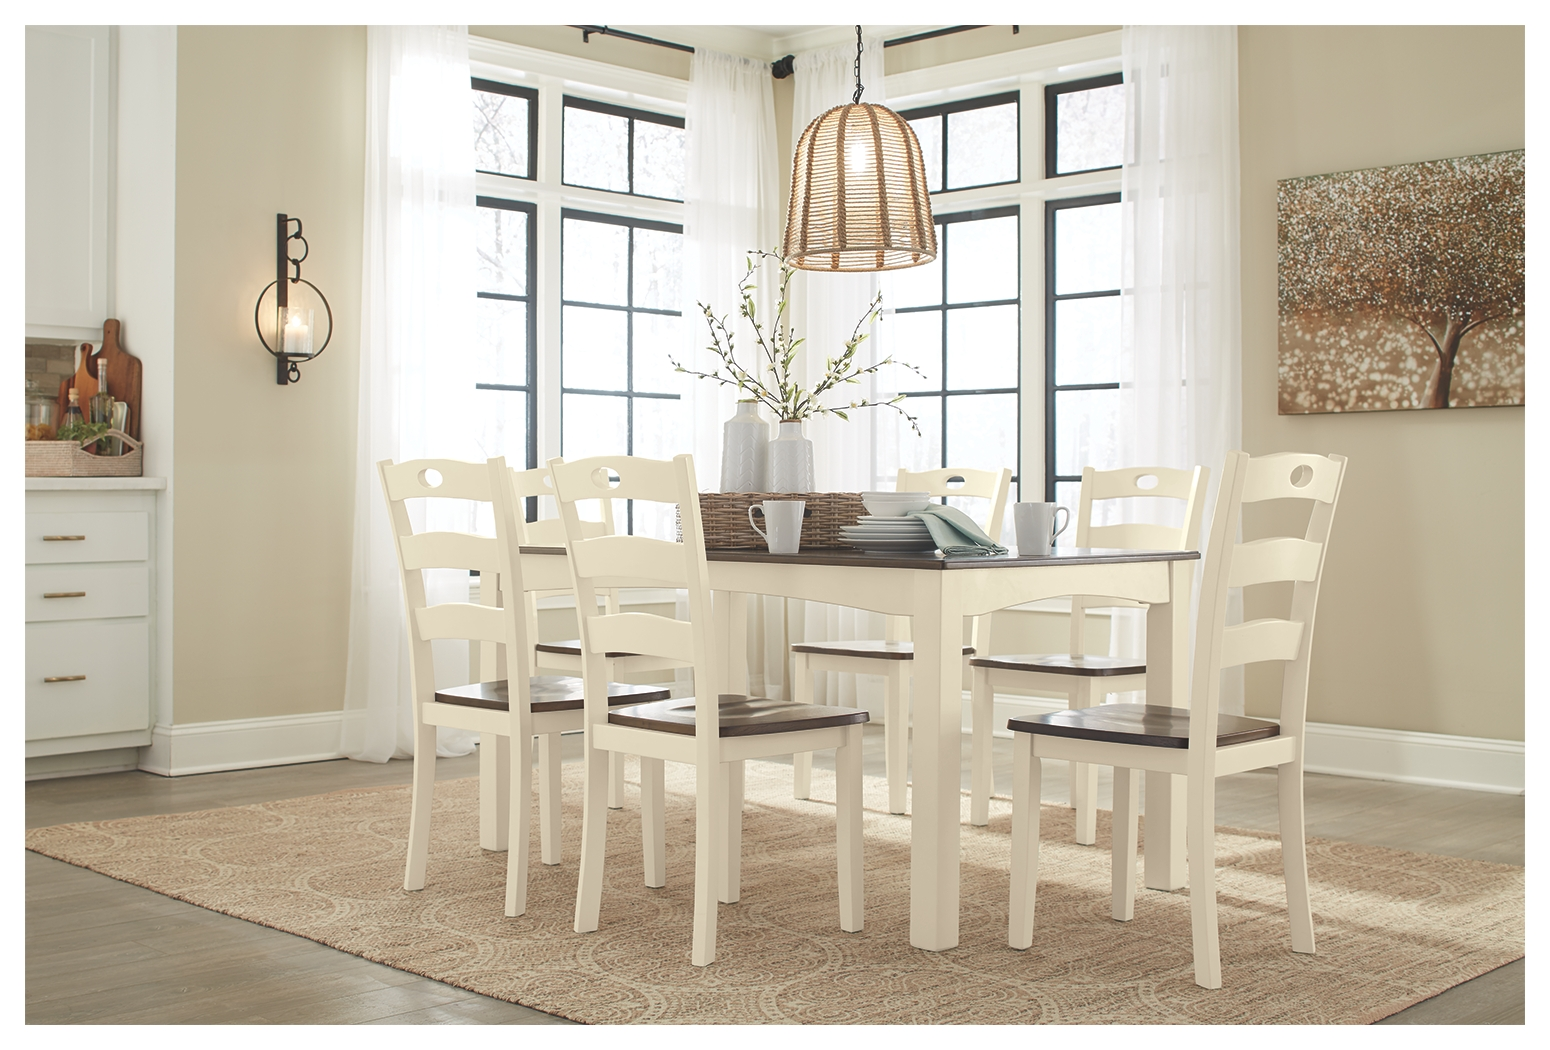 Woodanville Dining Room Table And, Woodinville Dining Room Table And Chairs Set Of 7